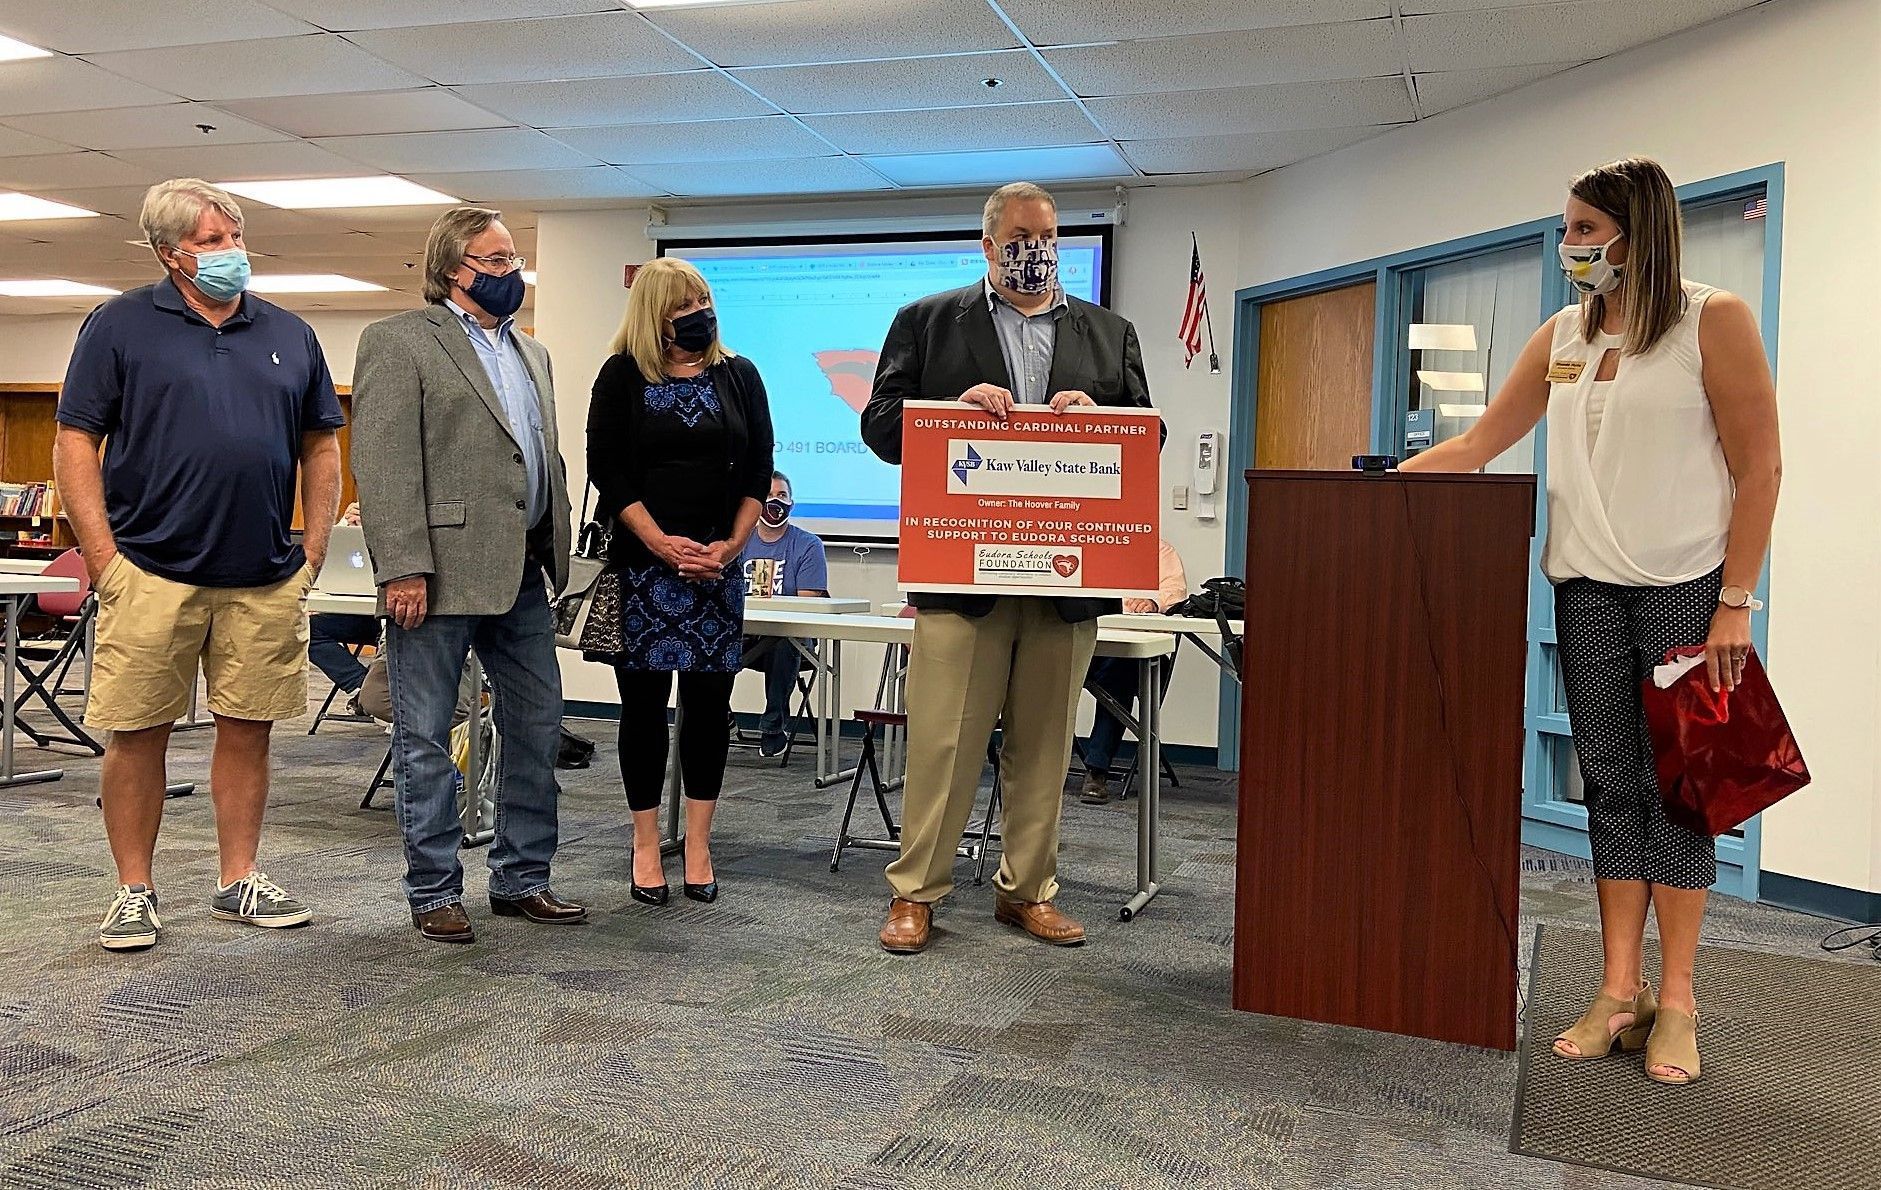 Congratulations to Kaw Valley State Bank - Eudora School Foundation's 2020 Outstanding Cardinal Partner